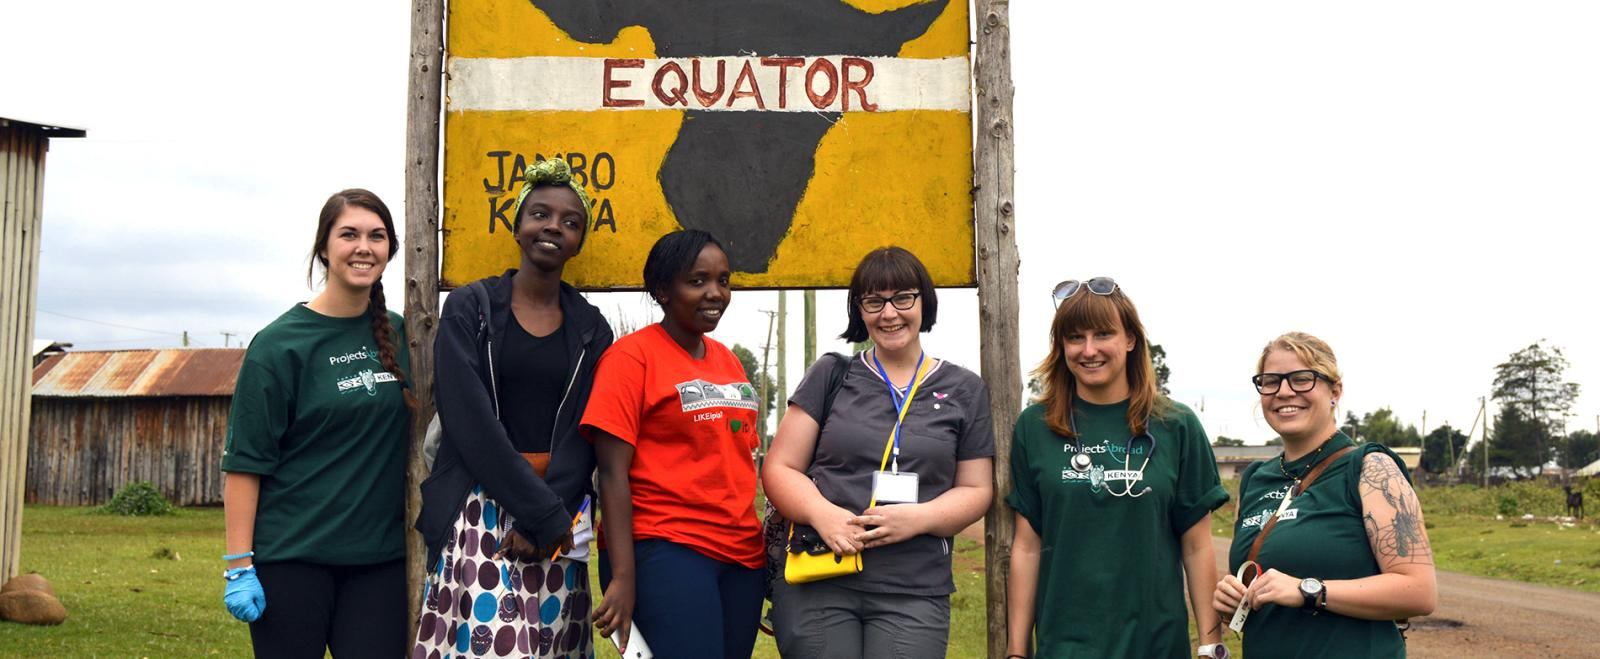 Projects Abroad medical volunteers pose next to an 'Equator' sign in Nanyuki, Kenya